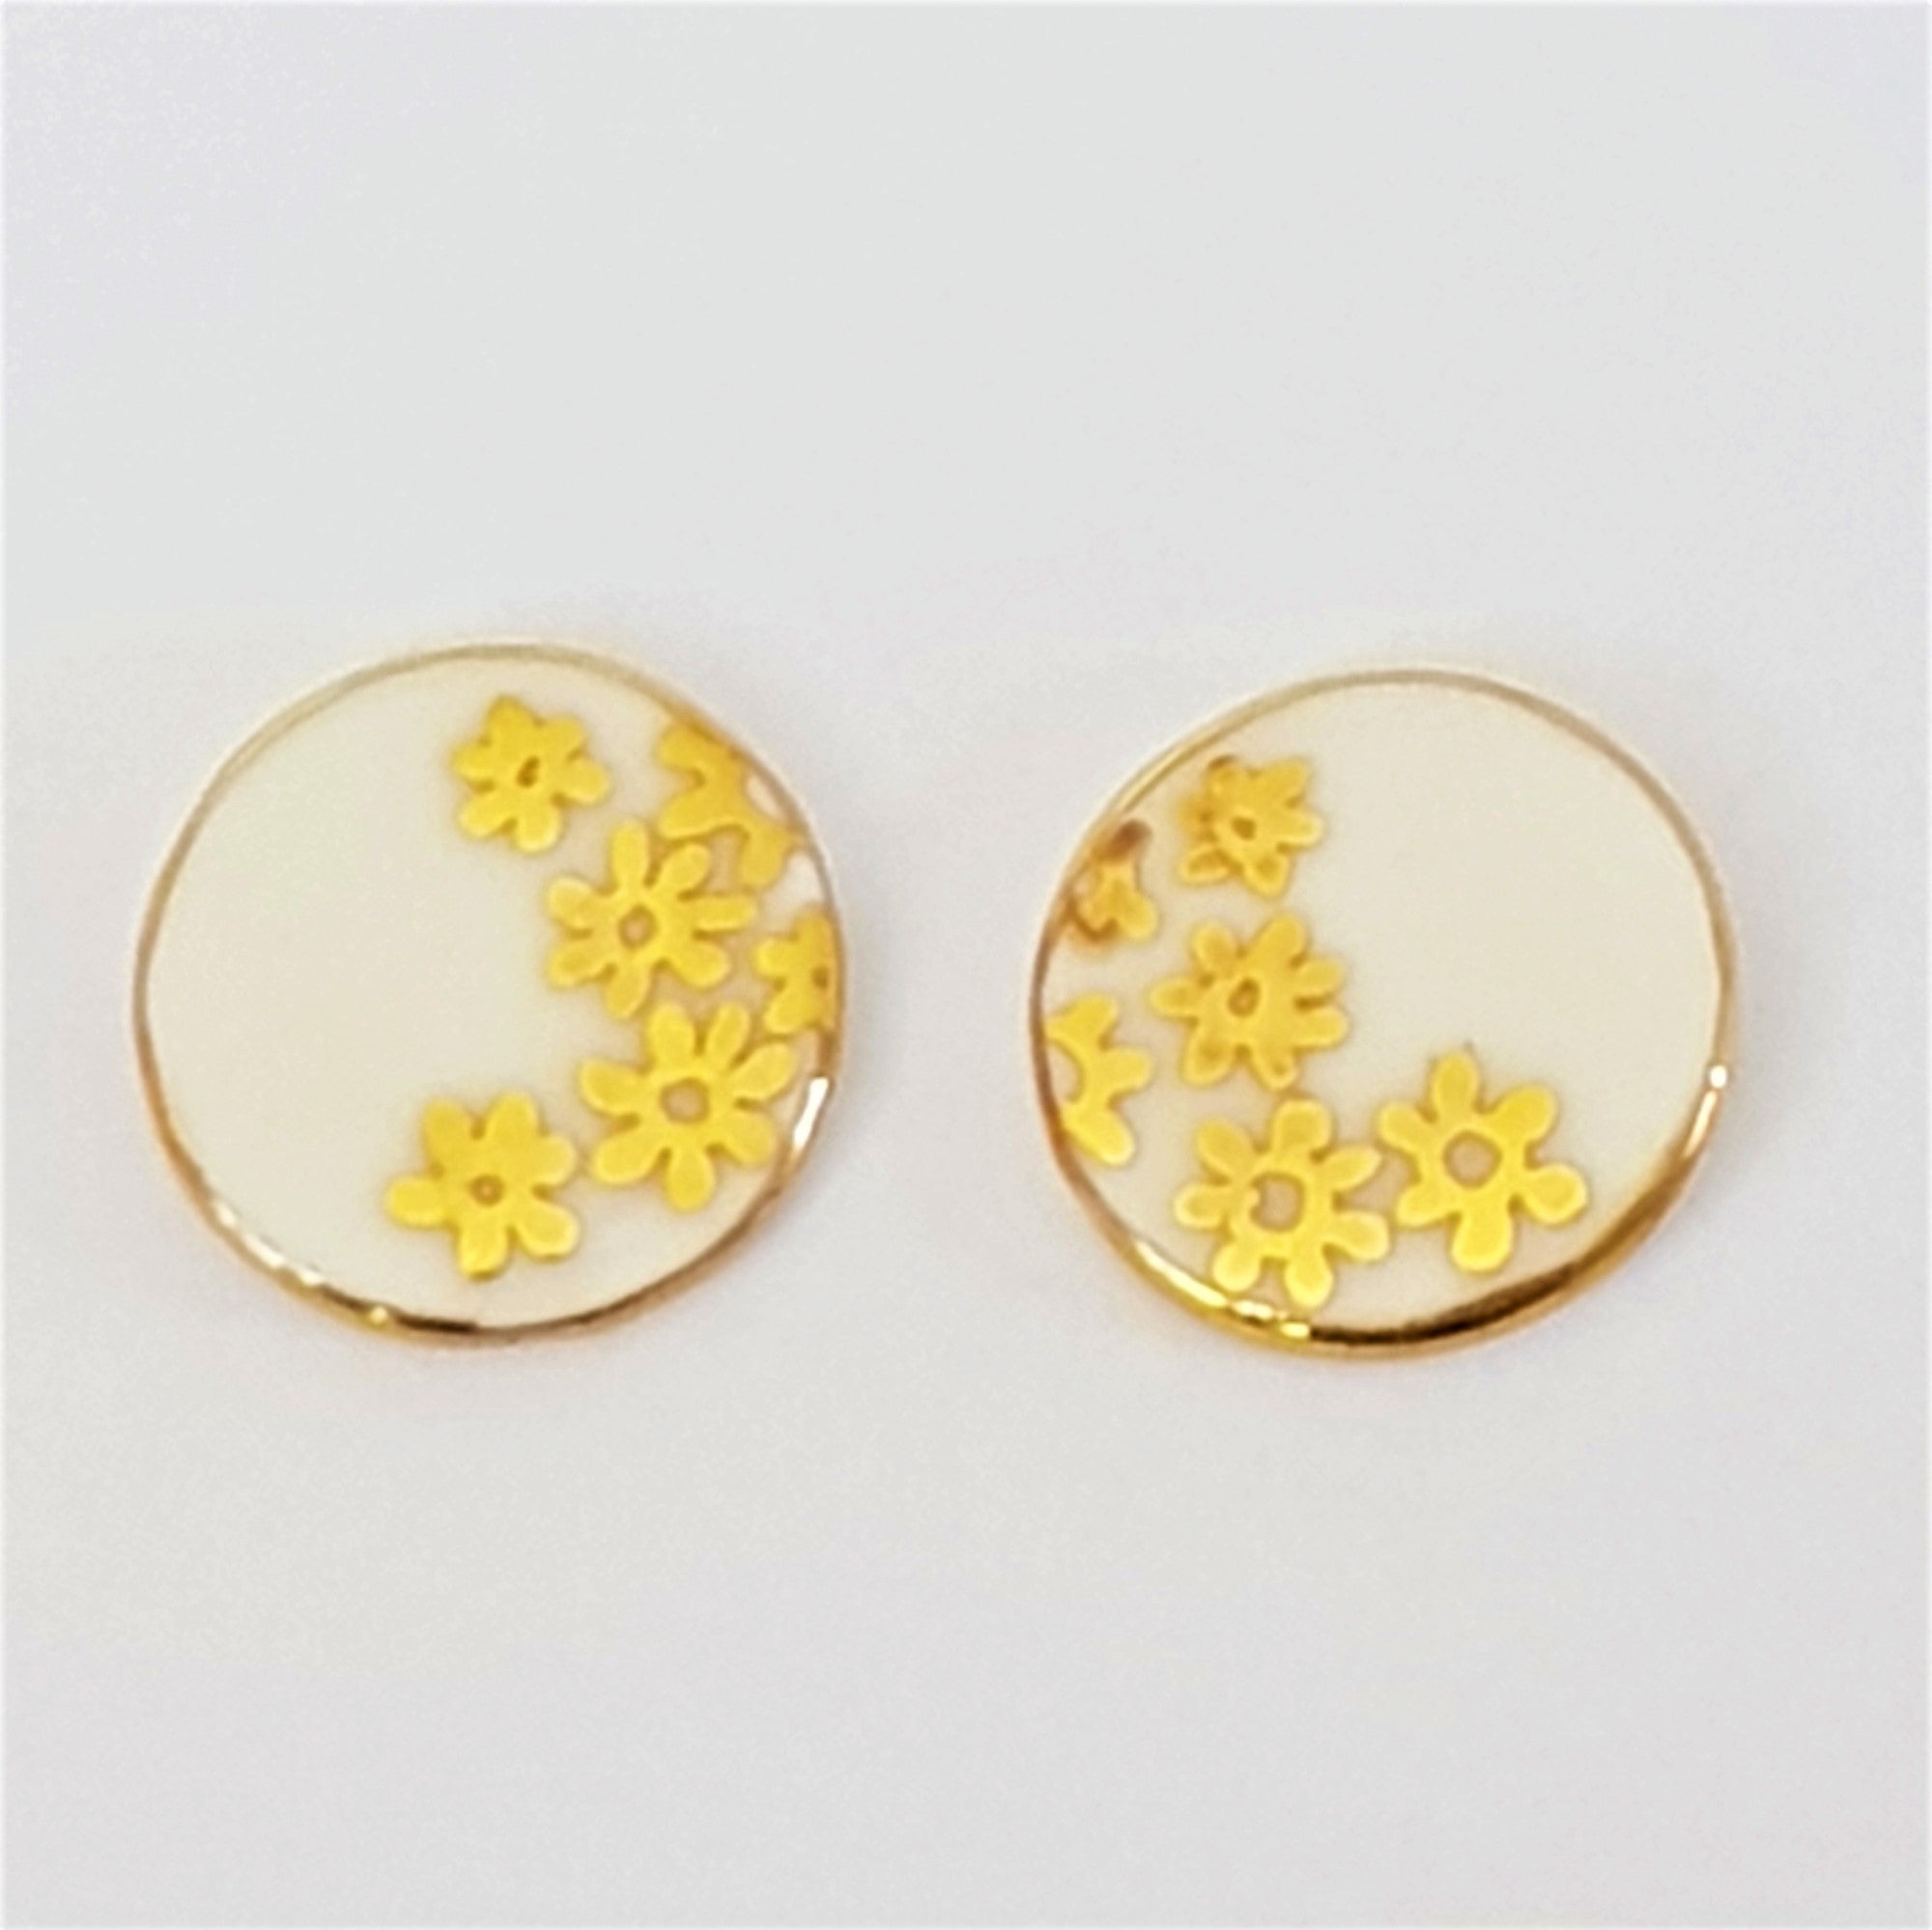 gold and white round porcelain stud earrings